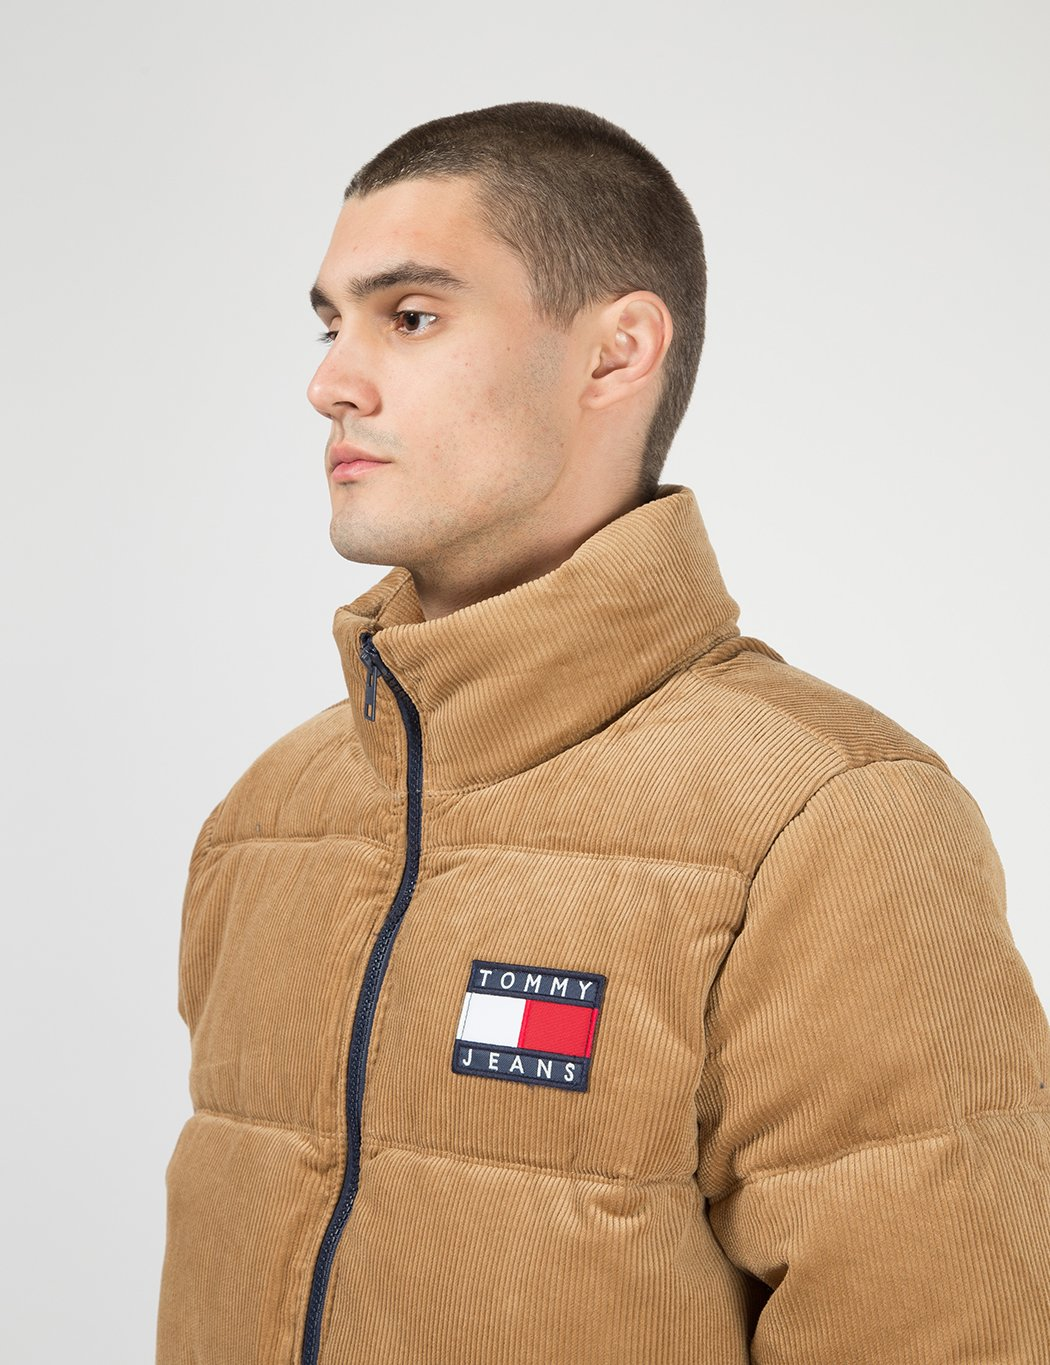 Tommy Hilfiger Tommy Jeans Corduroy Puffer Jacket - Tigers ...